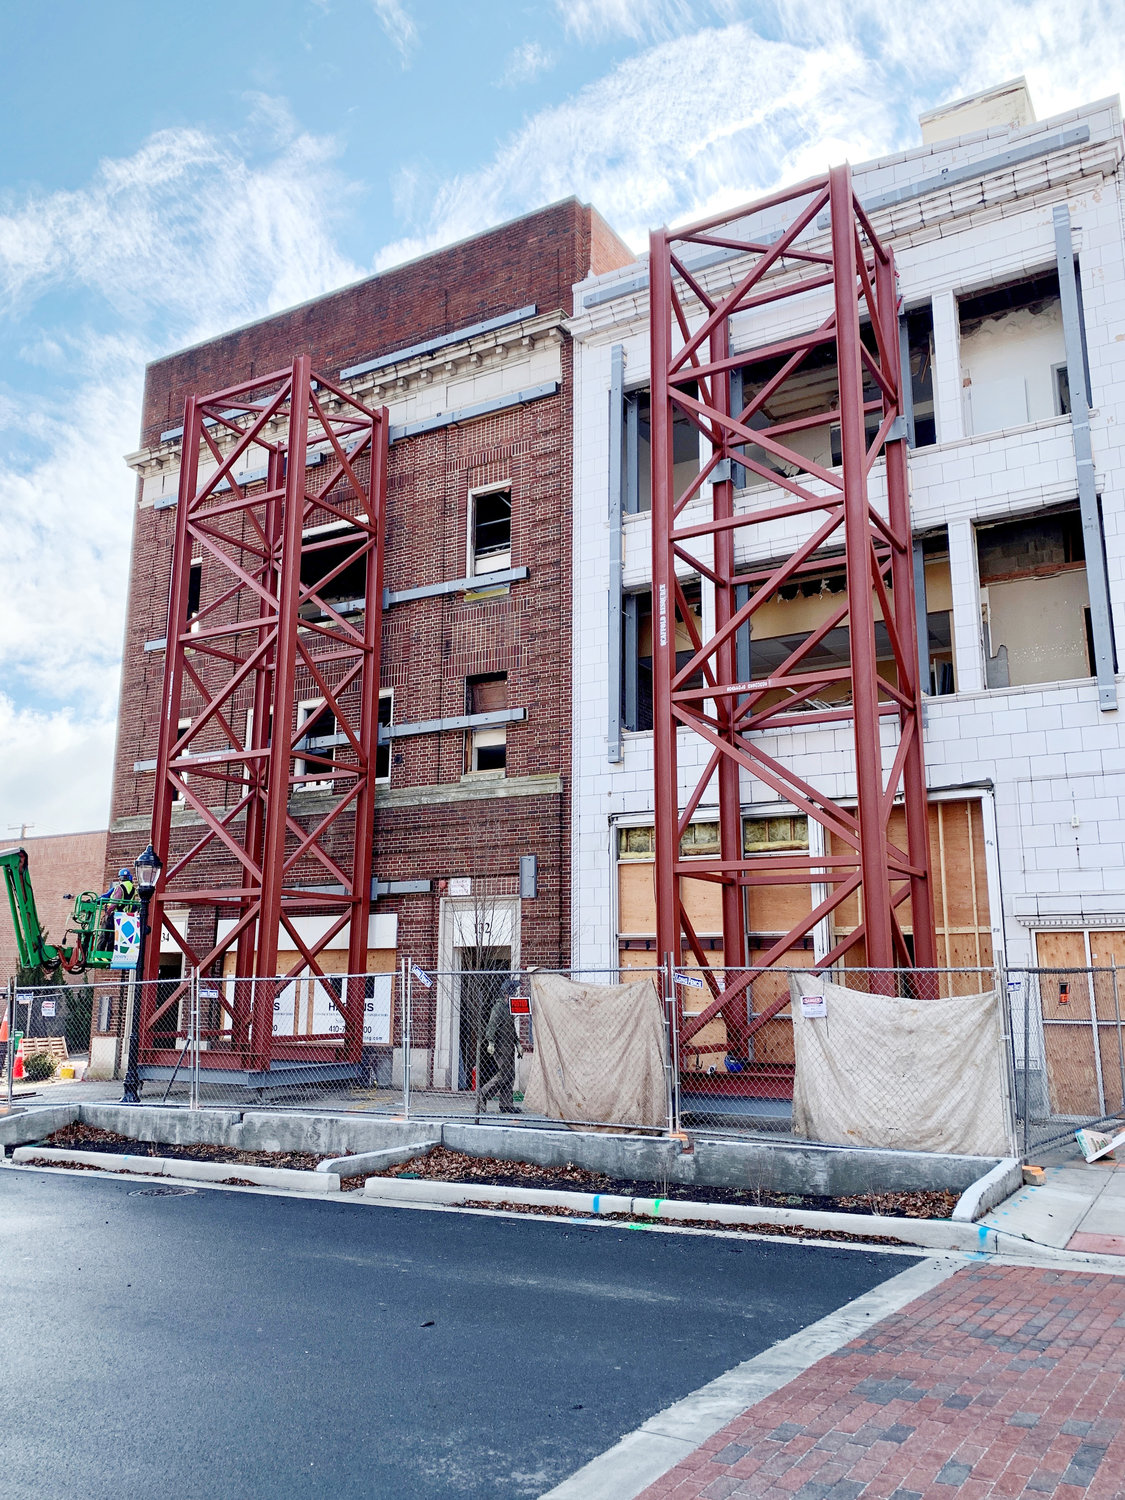 A tax incentive plan, that would help construction funding for The Ross and other big-ticket Downtown Salisbury projects, is being met with skepticism by members of the Wicomico County Council.